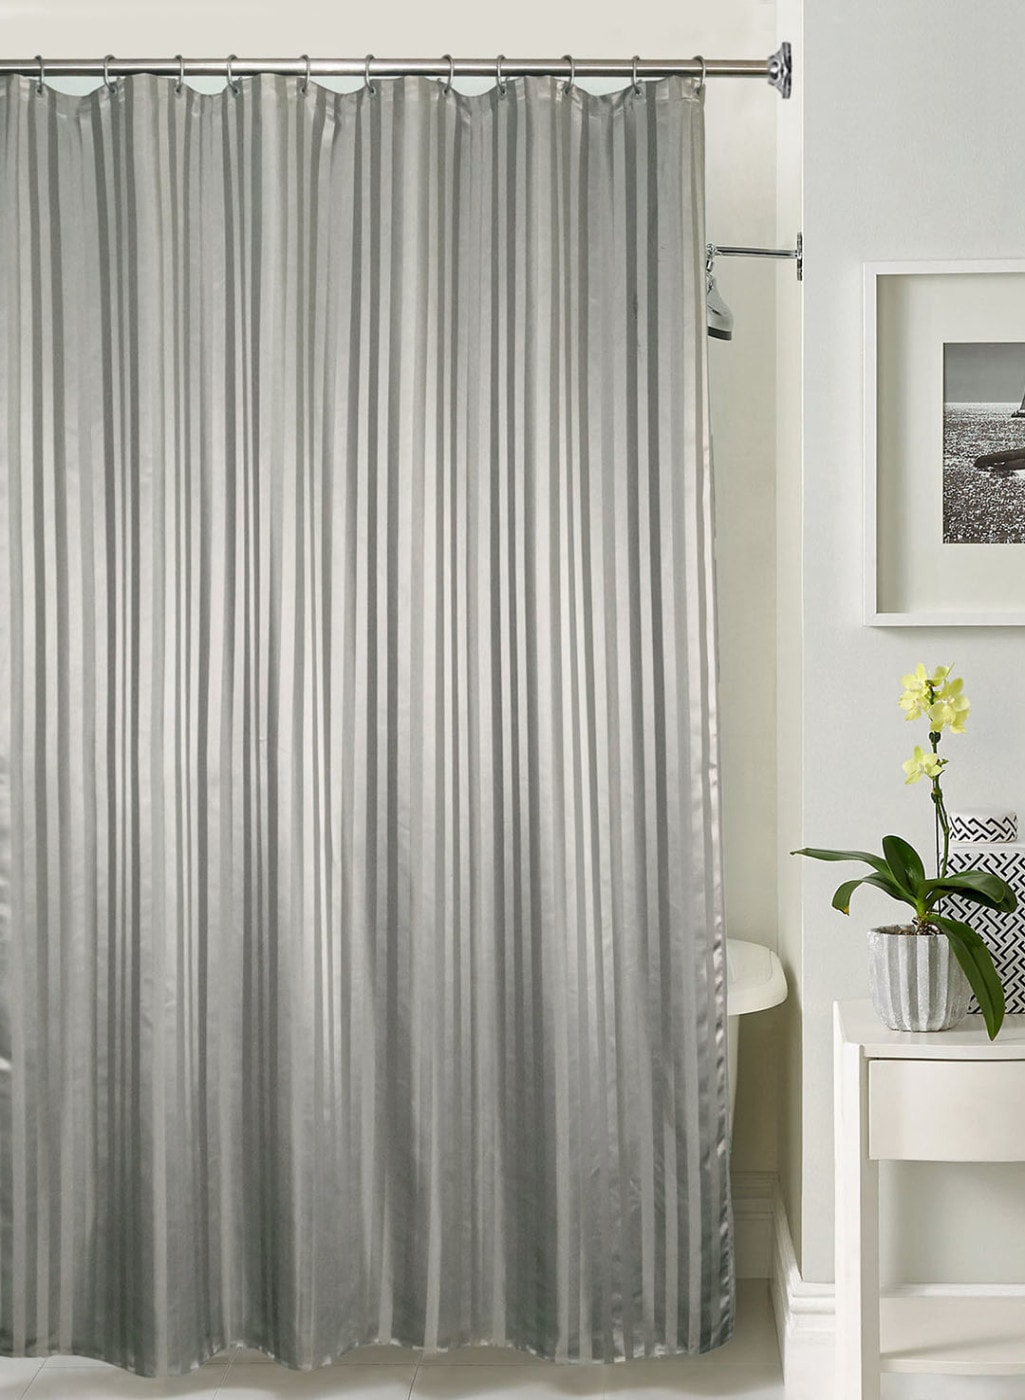 Lushomes Grey Striped Shower Curtain